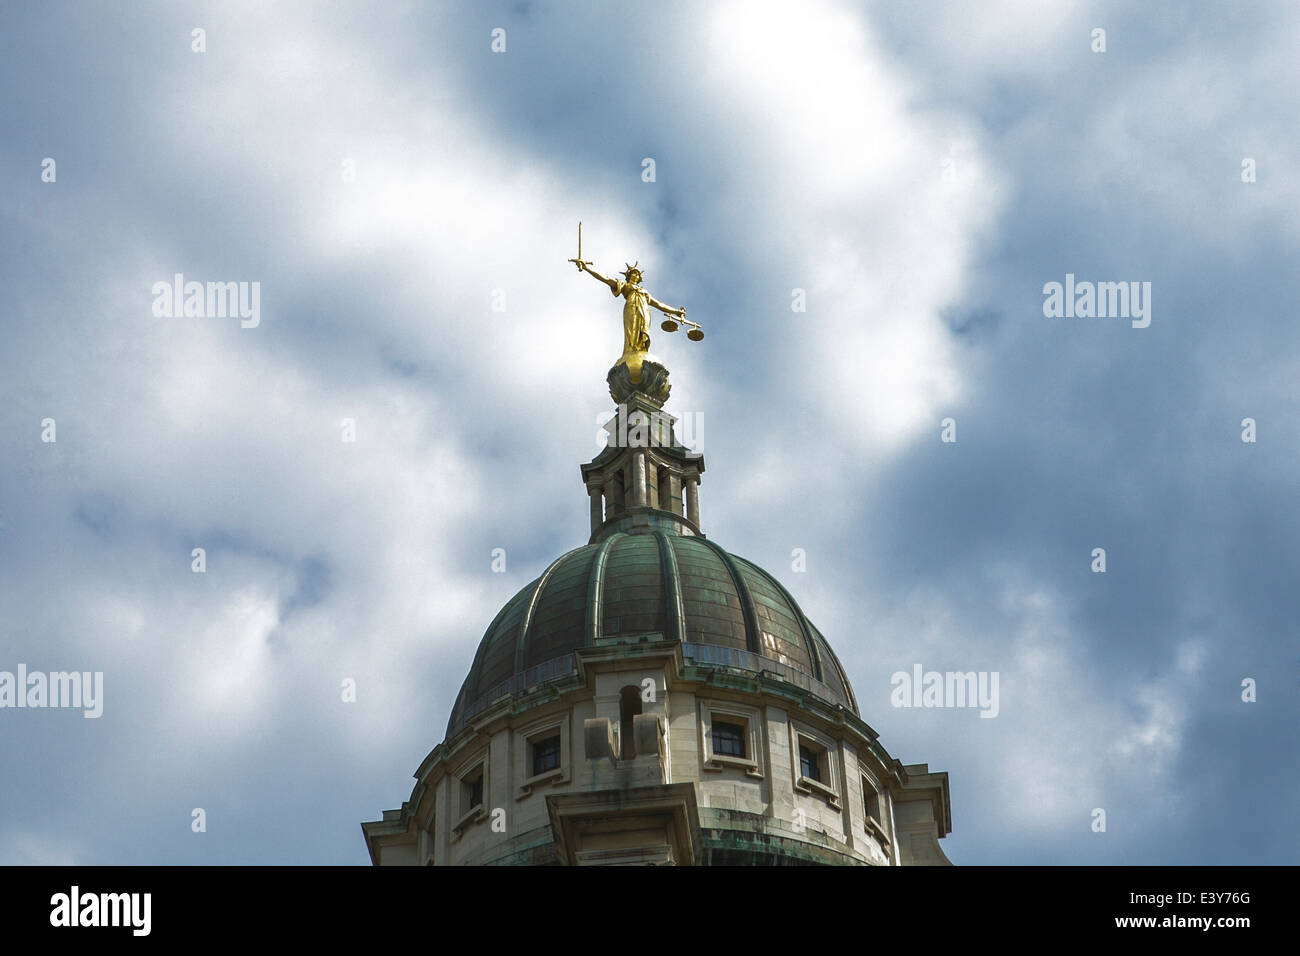 Justice statue and dome, The Old Bailey, Central Criminal Court, City of London, England, UK. - Stock Image